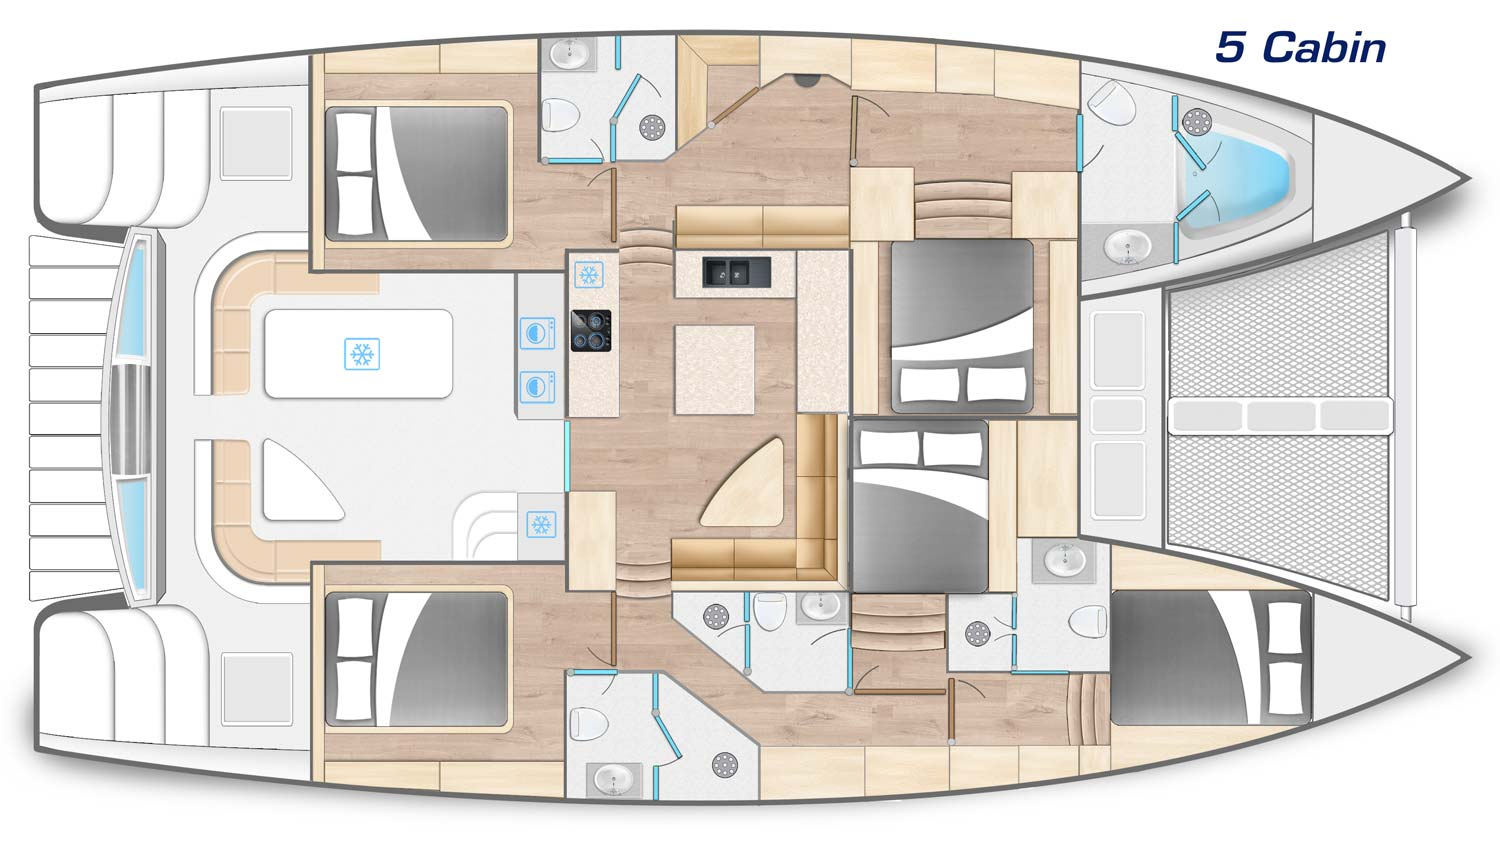 Royal Charters, Majestic 570 Cabin Layout